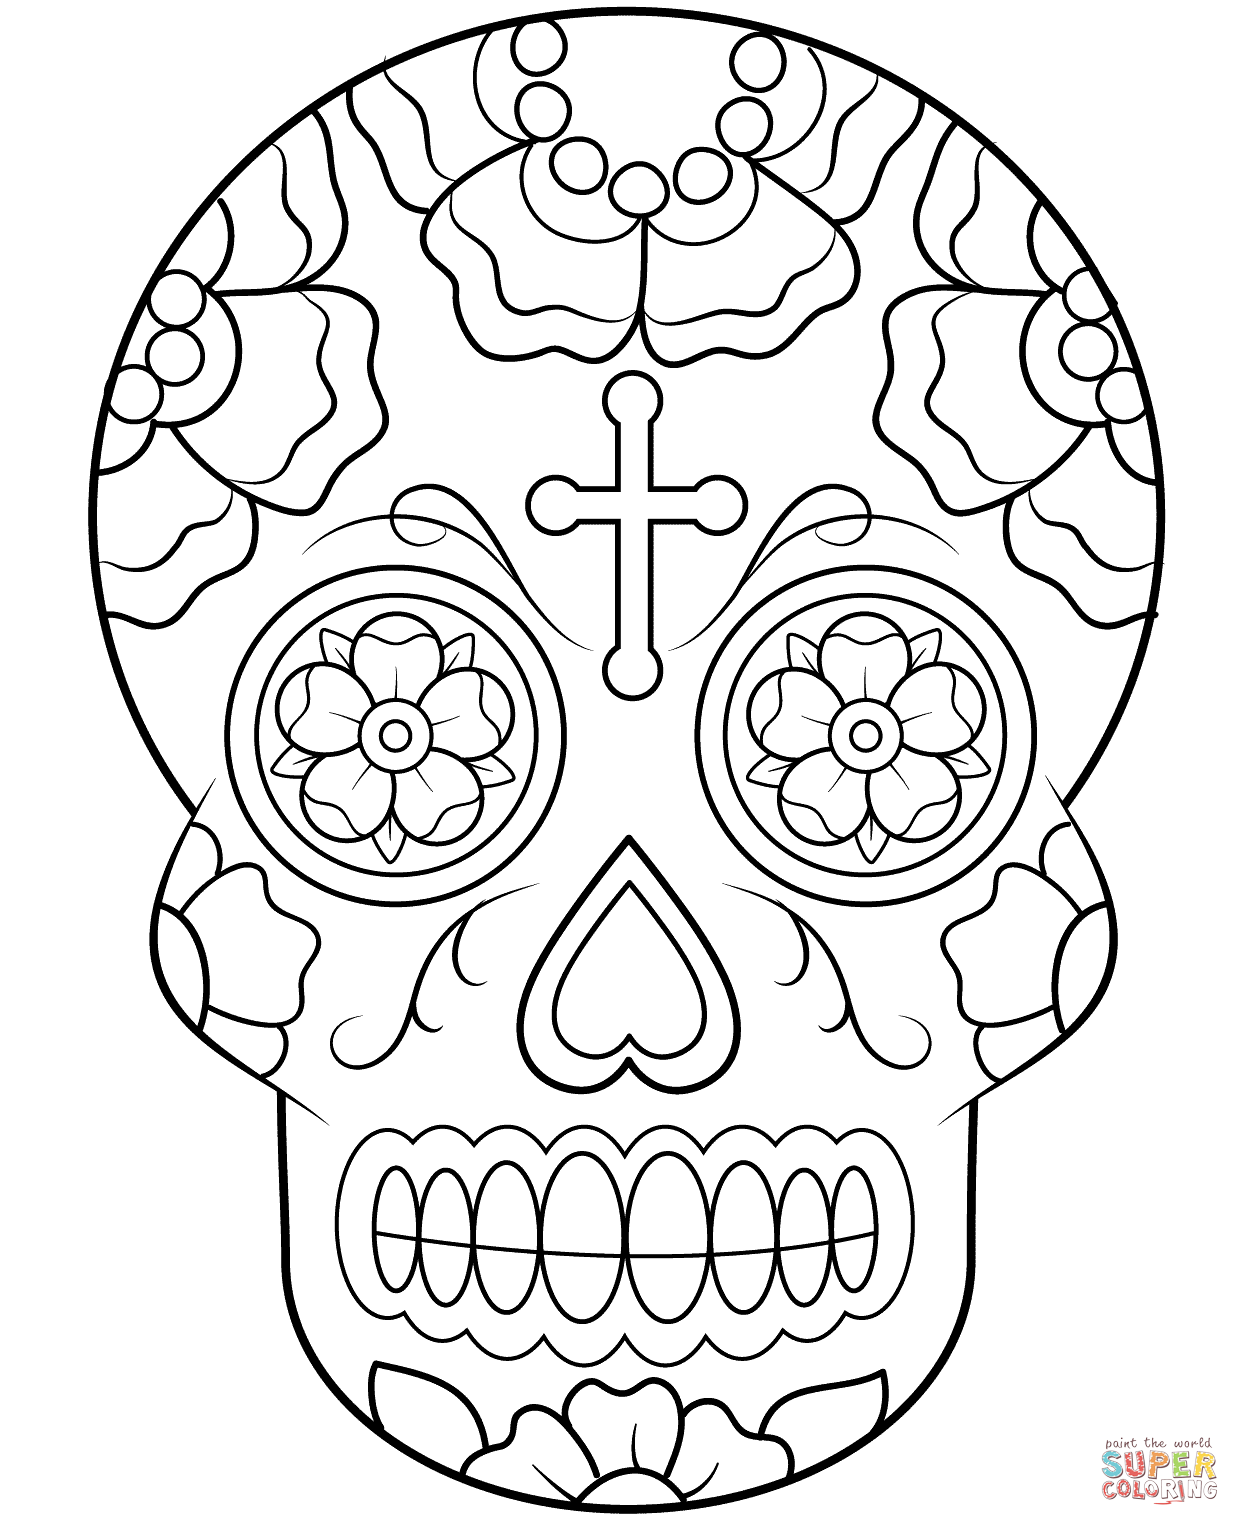 Sugar Skull coloring page | Free Printable Coloring Pages